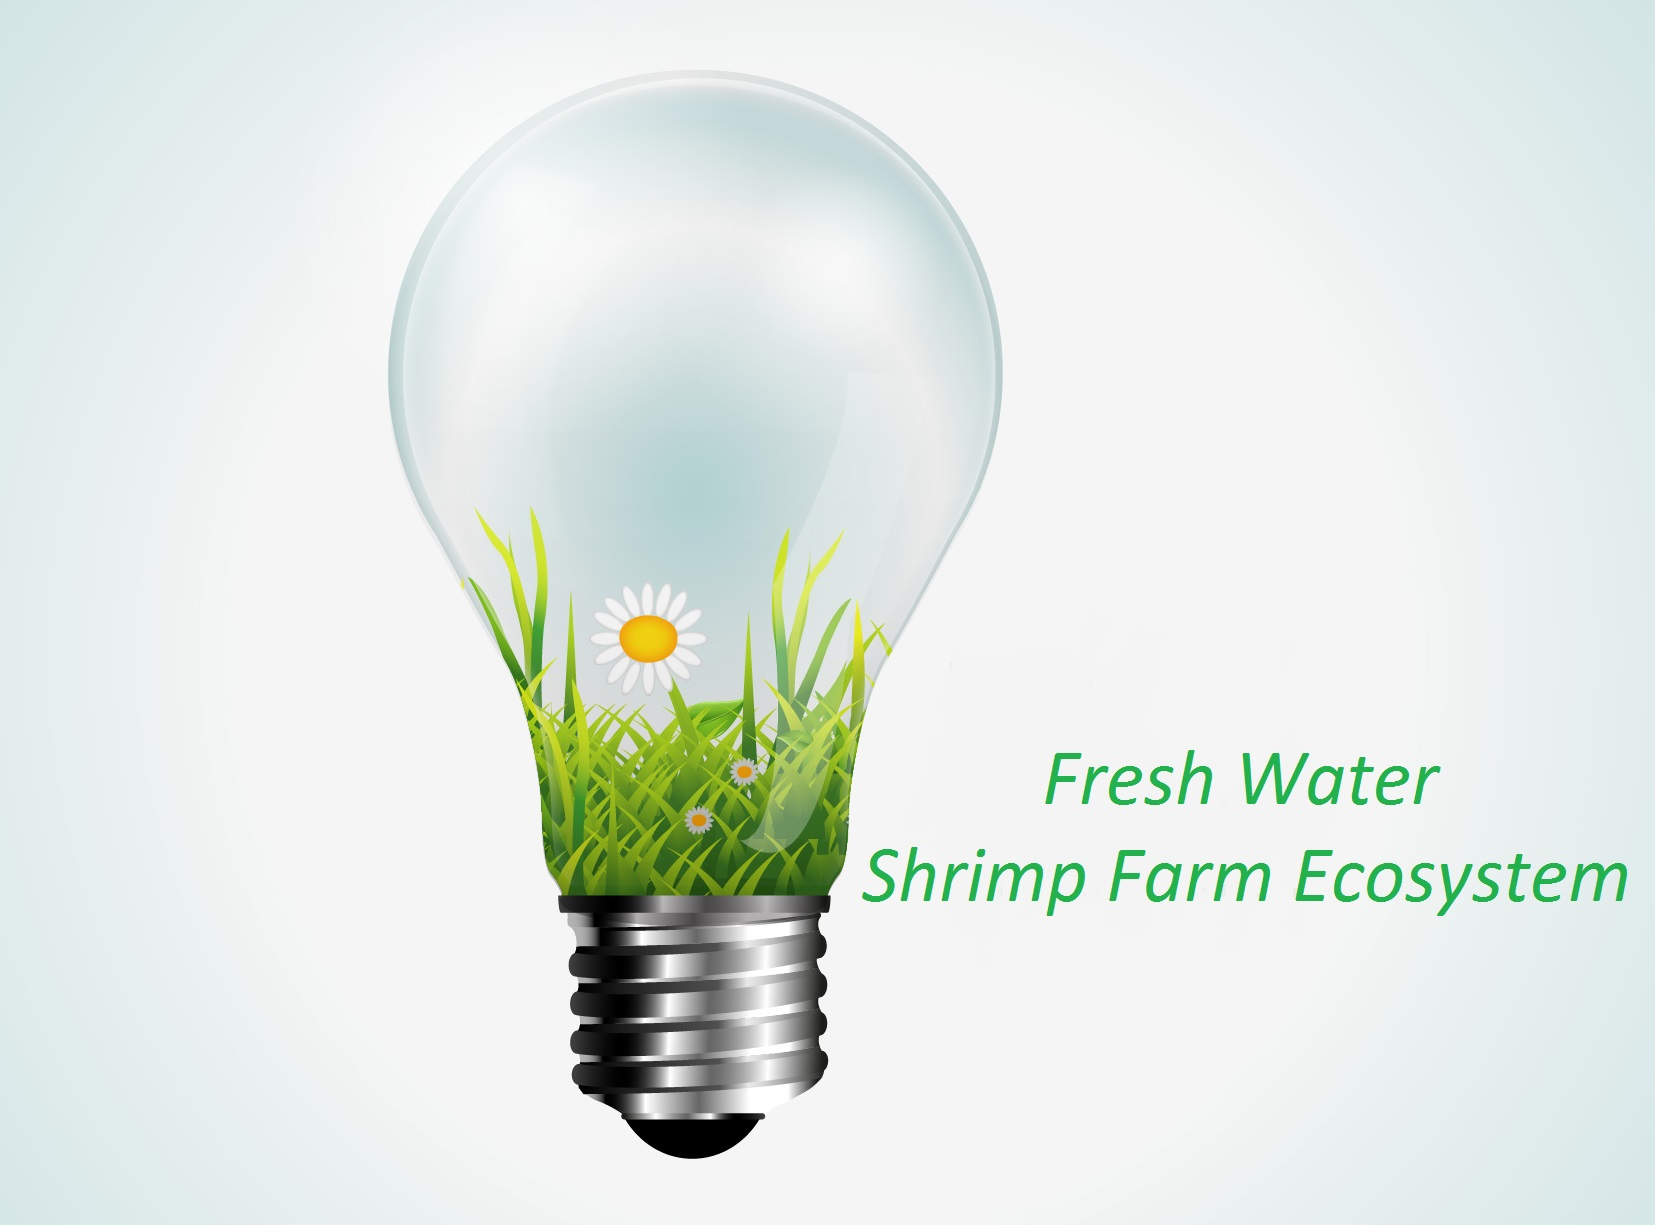 Fresh Shrimp Farm